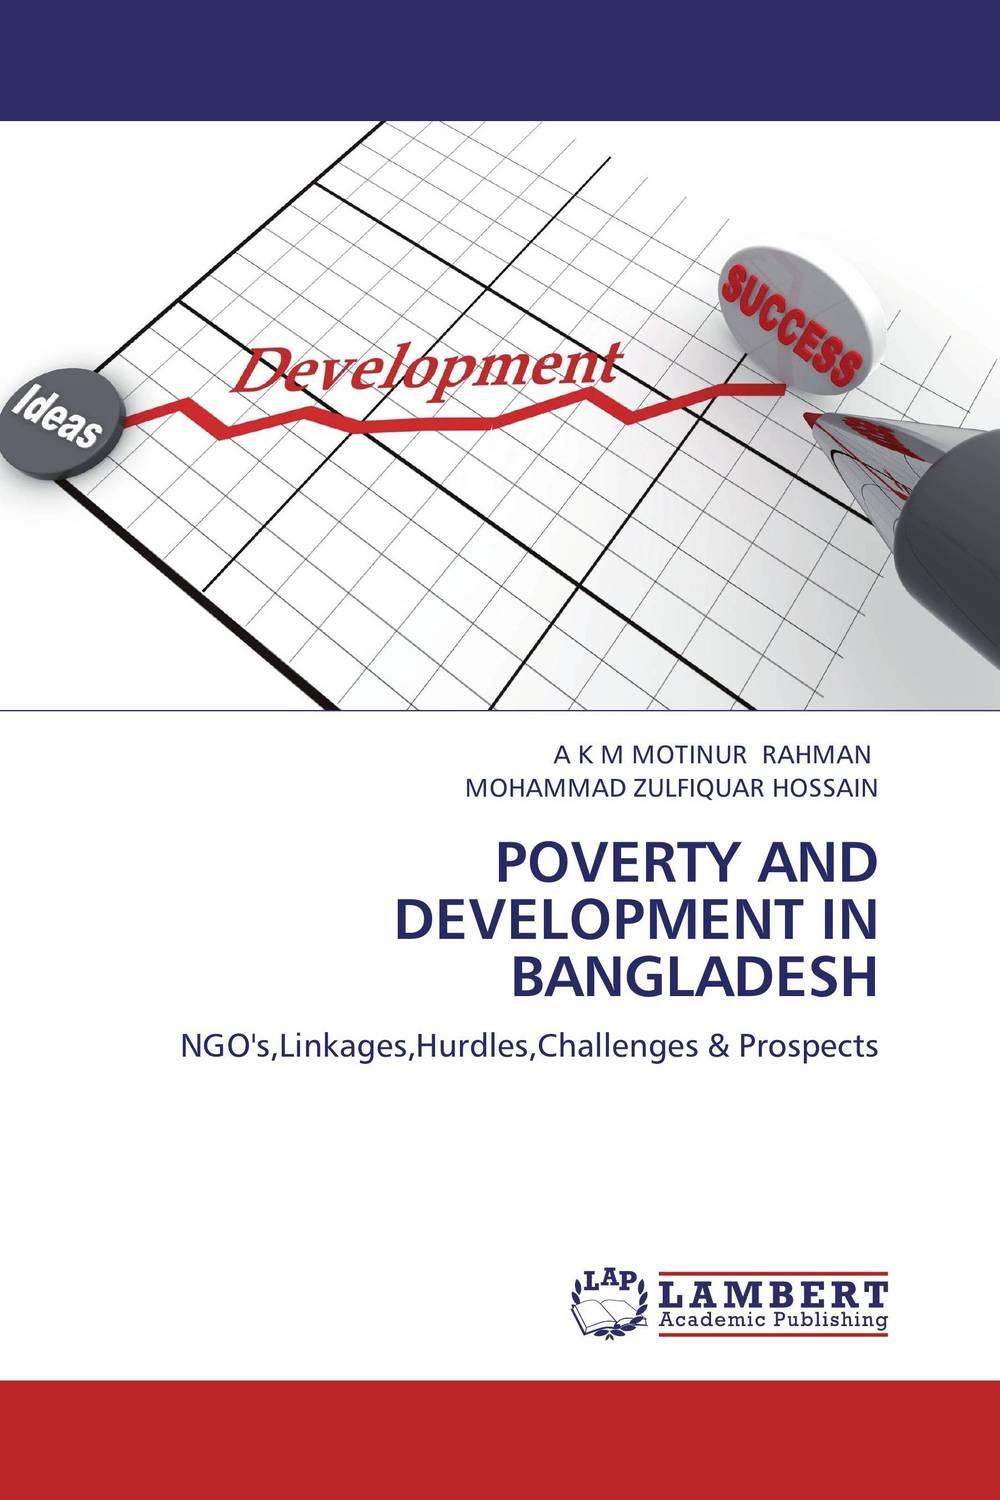 POVERTY AND DEVELOPMENT IN BANGLADESH role of ict in rural poverty alleviation